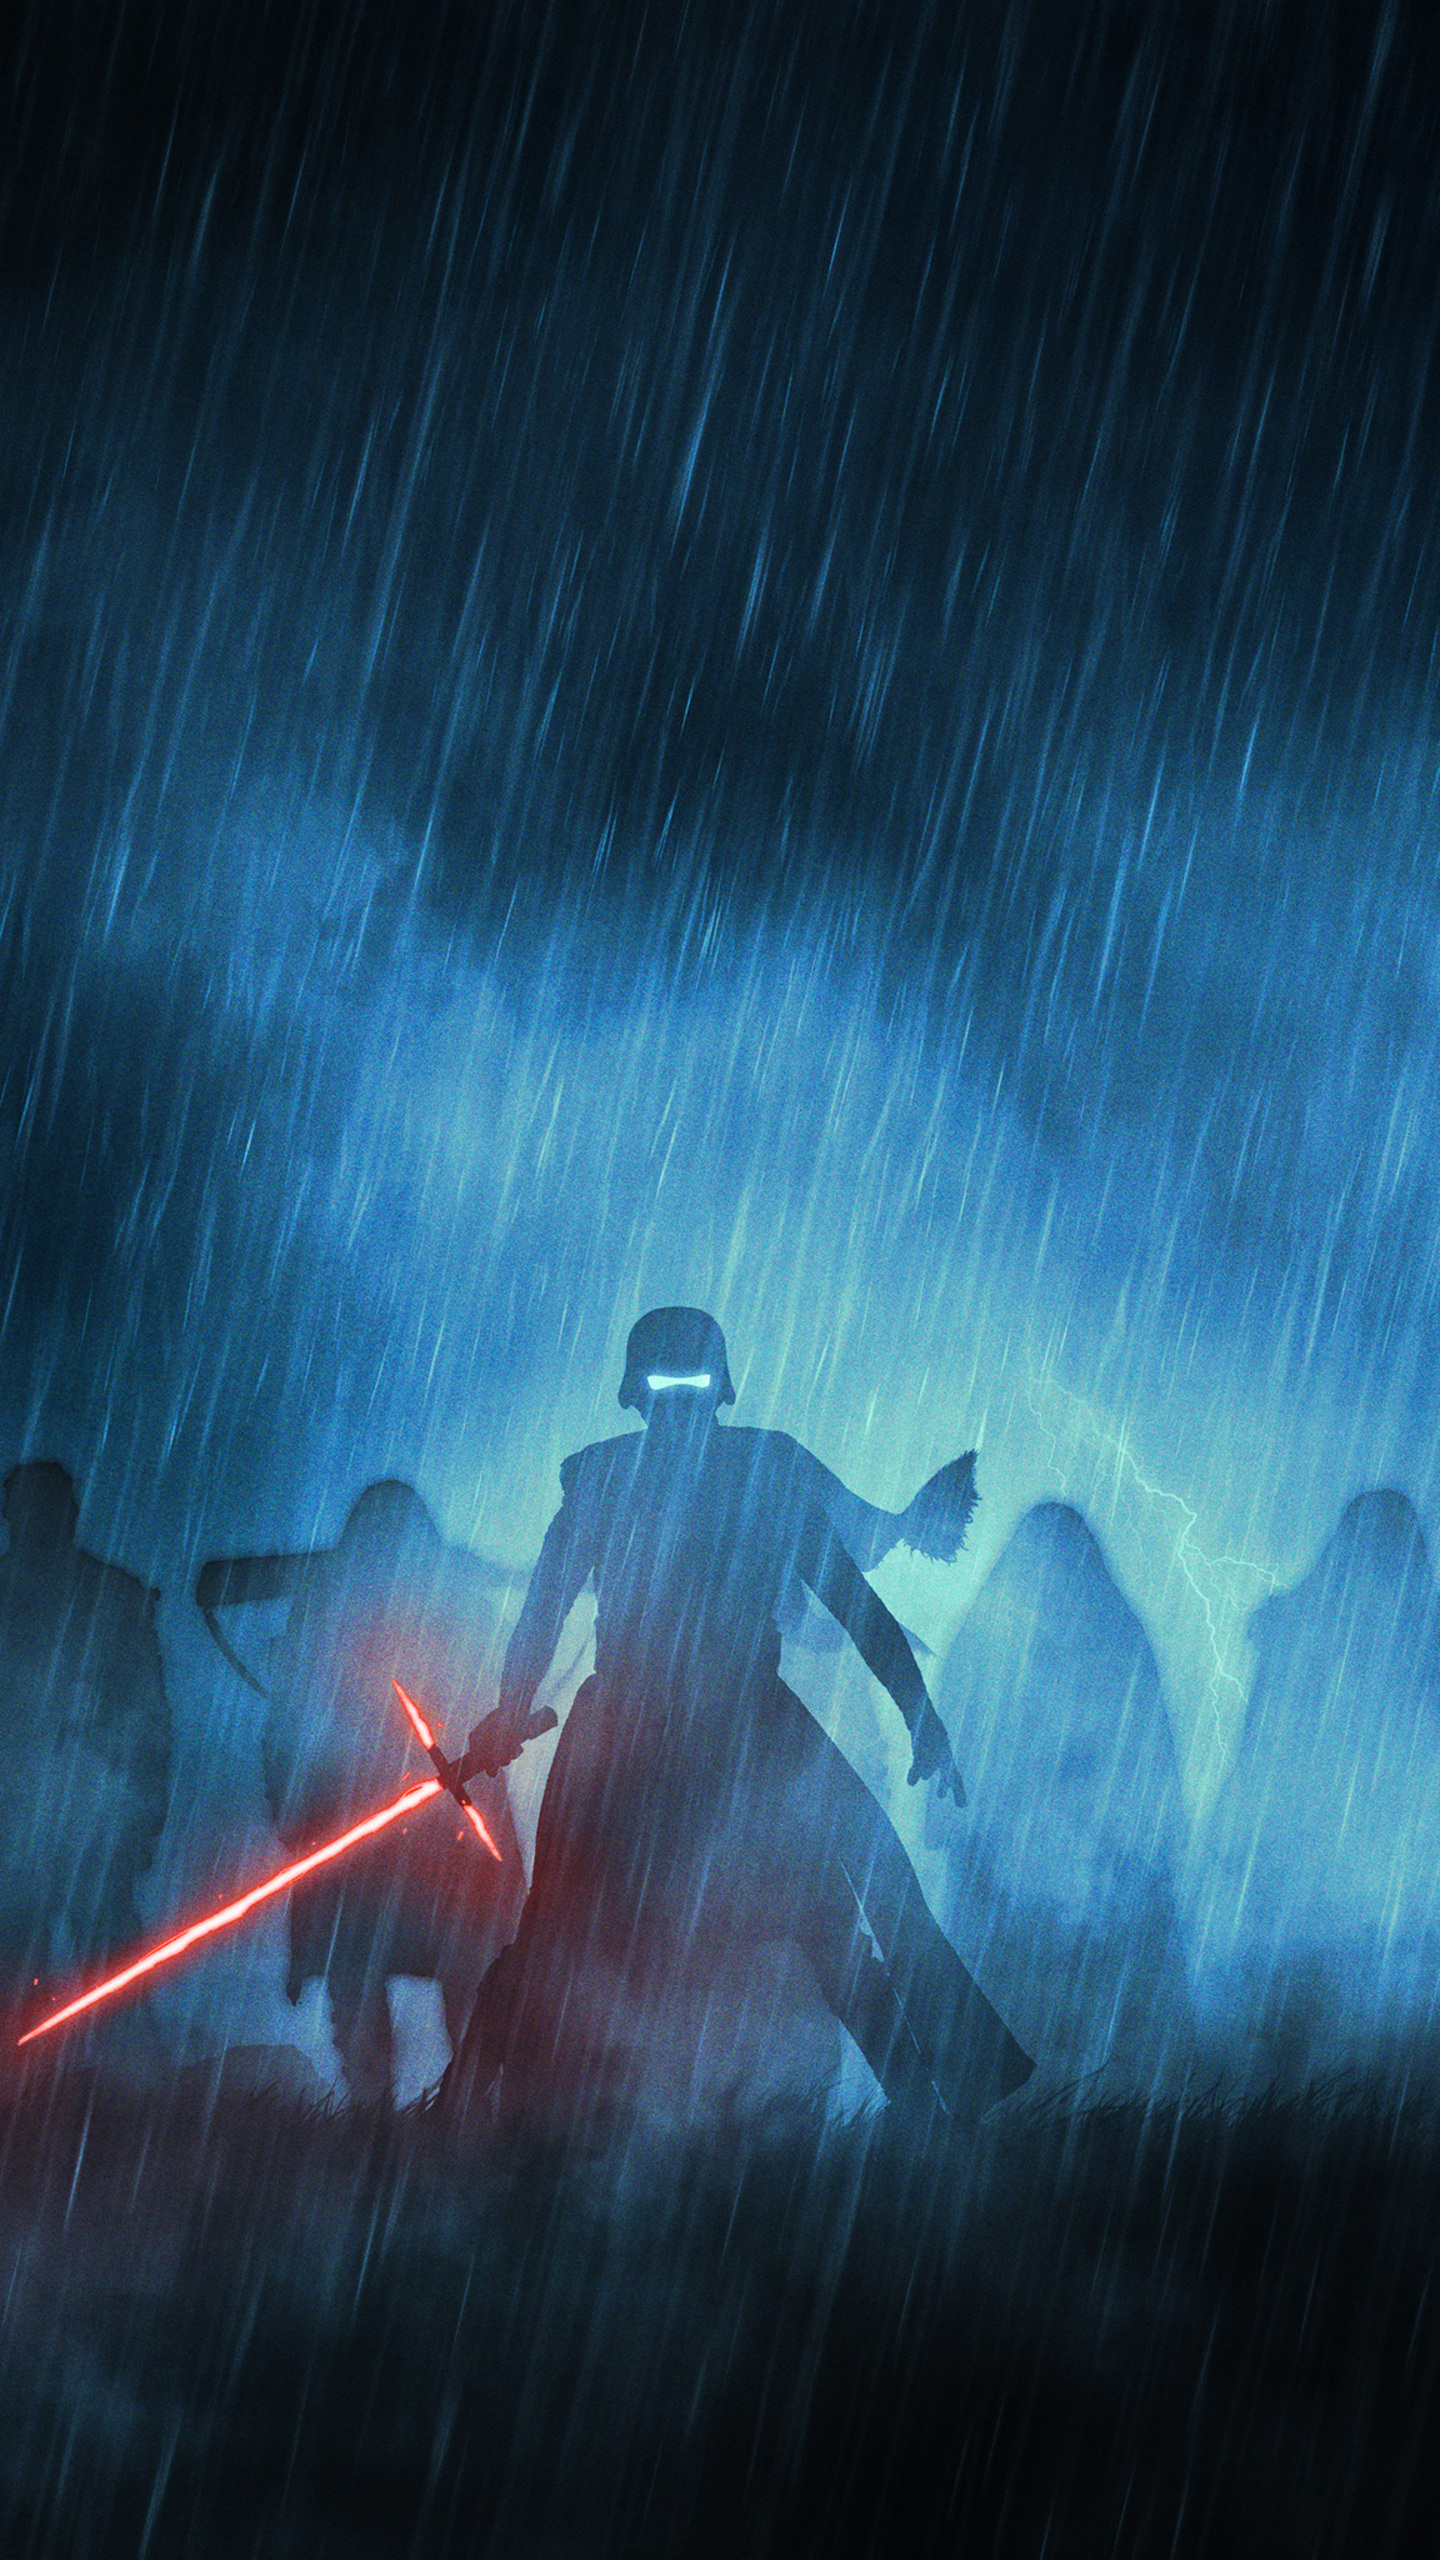 kylo-ren-with-his-knights-97.jpg